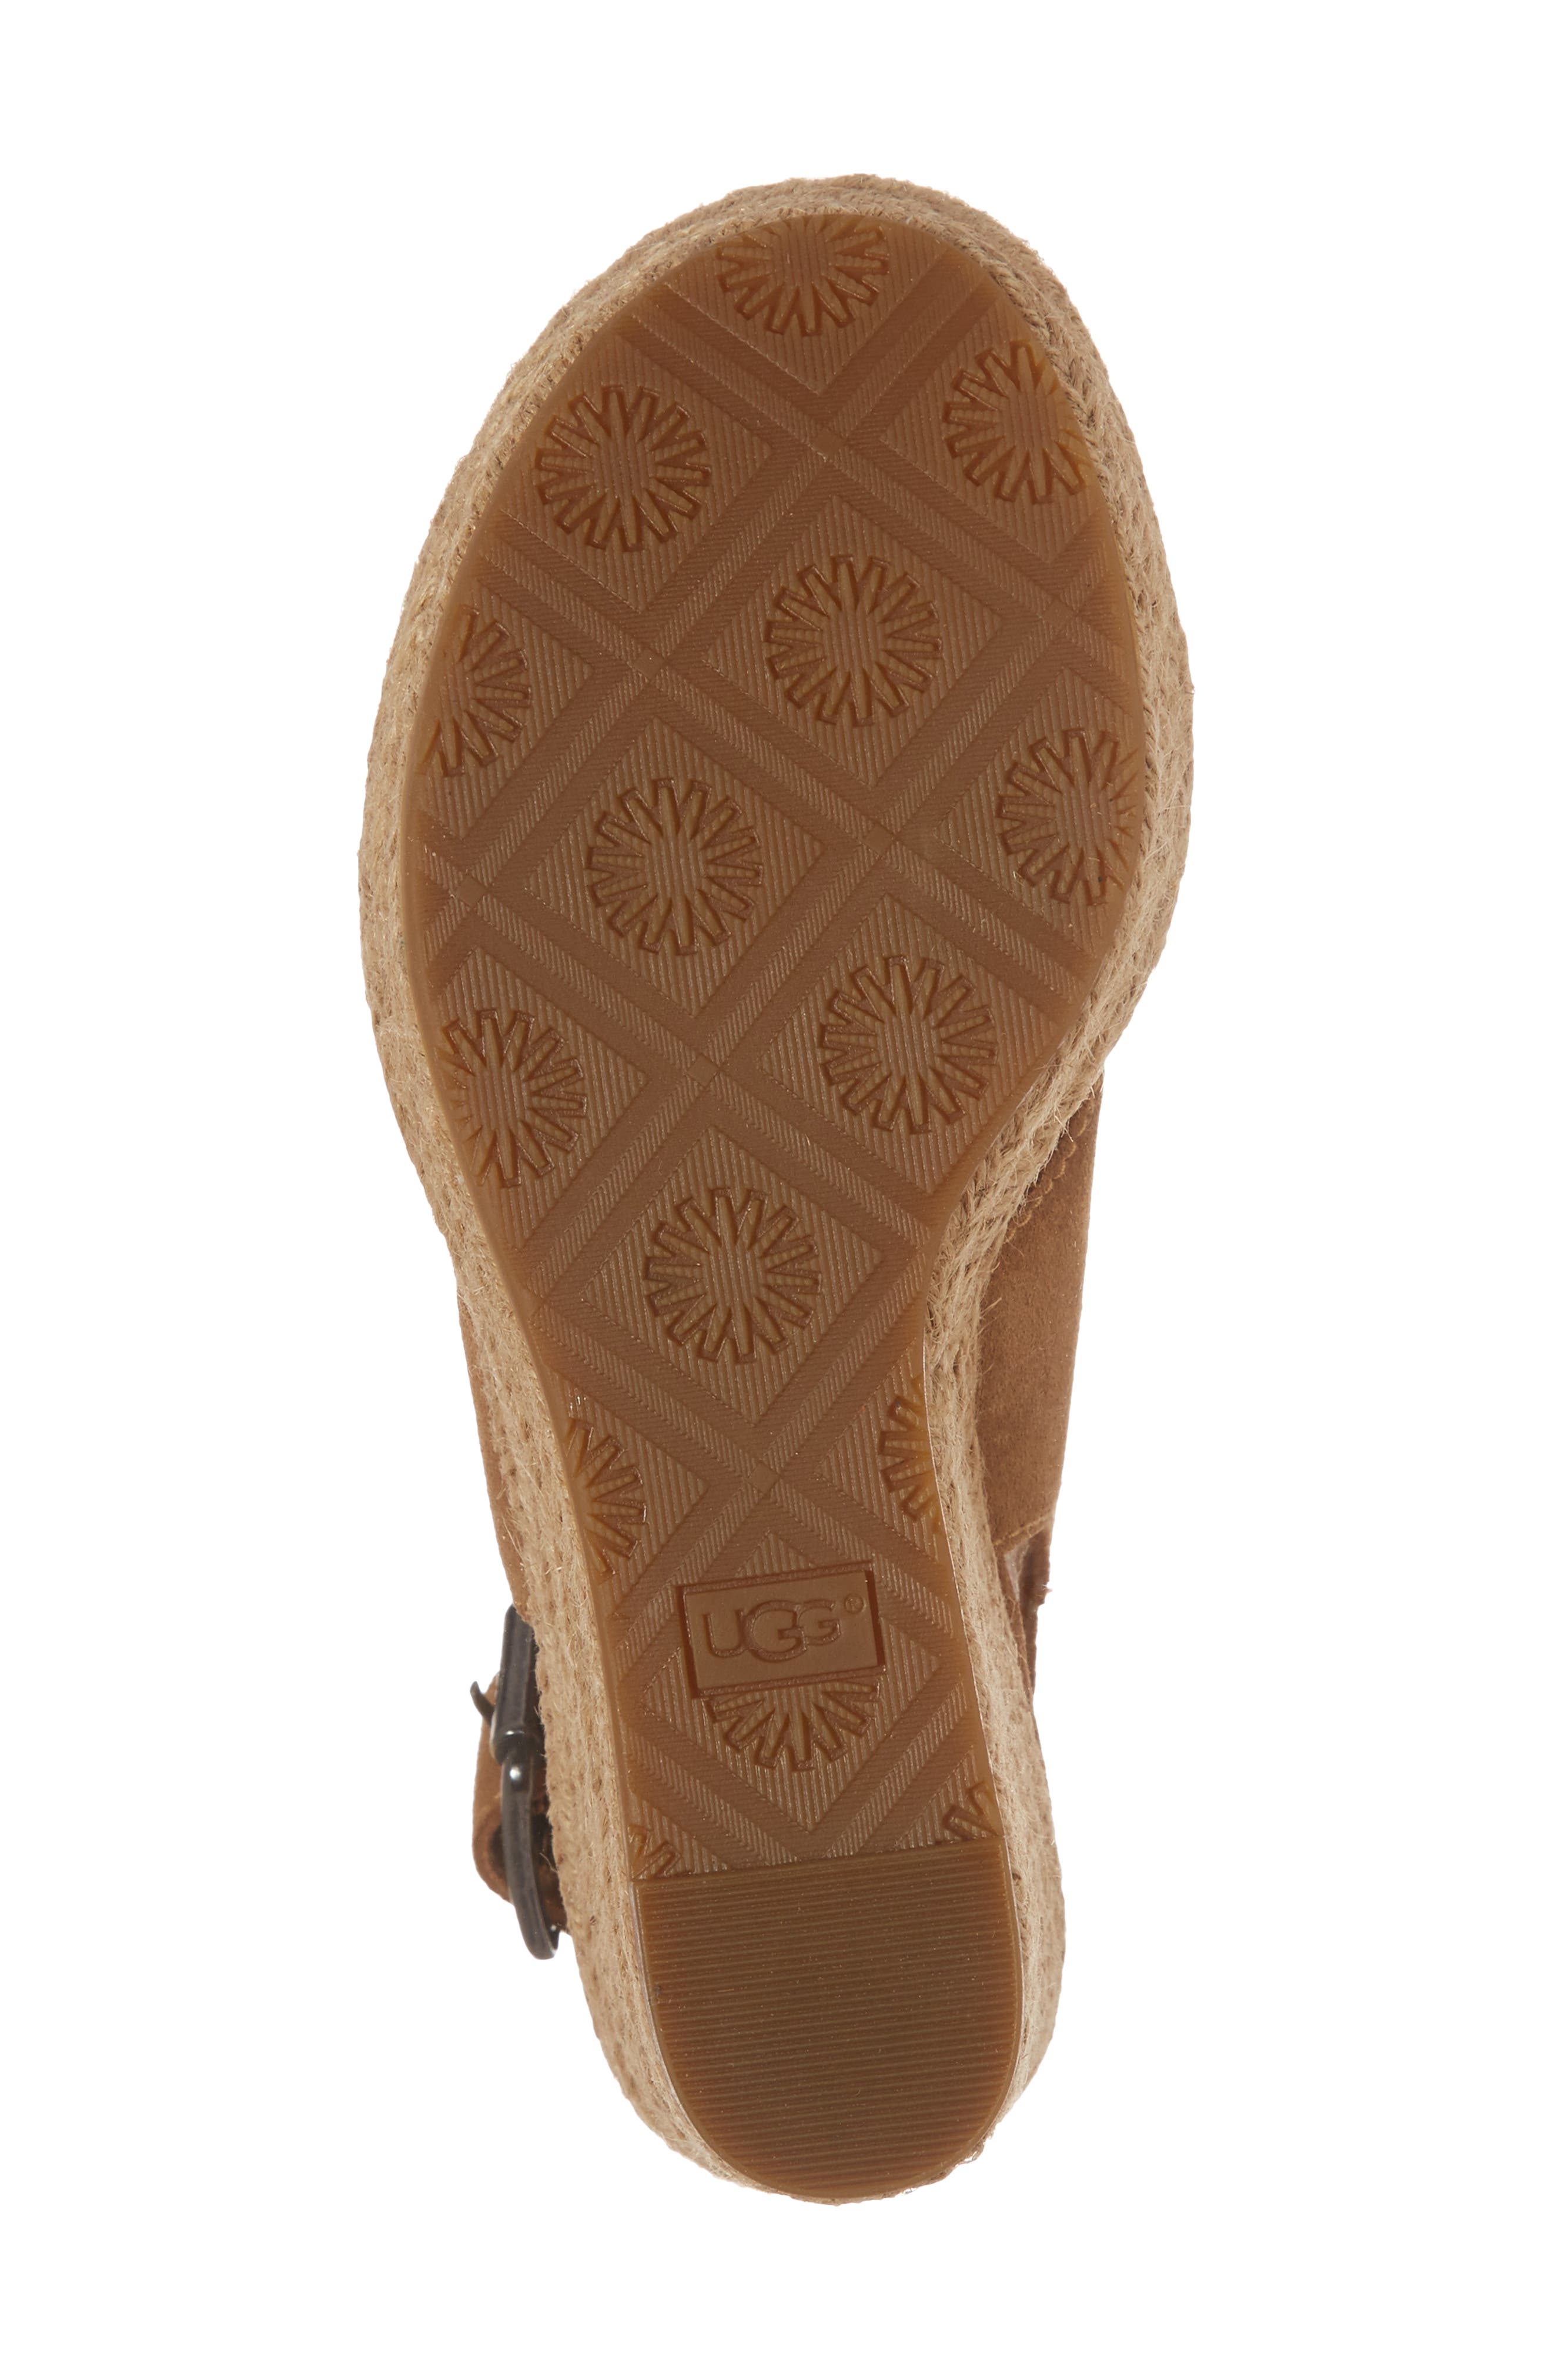 Harlow Platform Wedge Sandal,                             Alternate thumbnail 6, color,                             Chestnut Suede